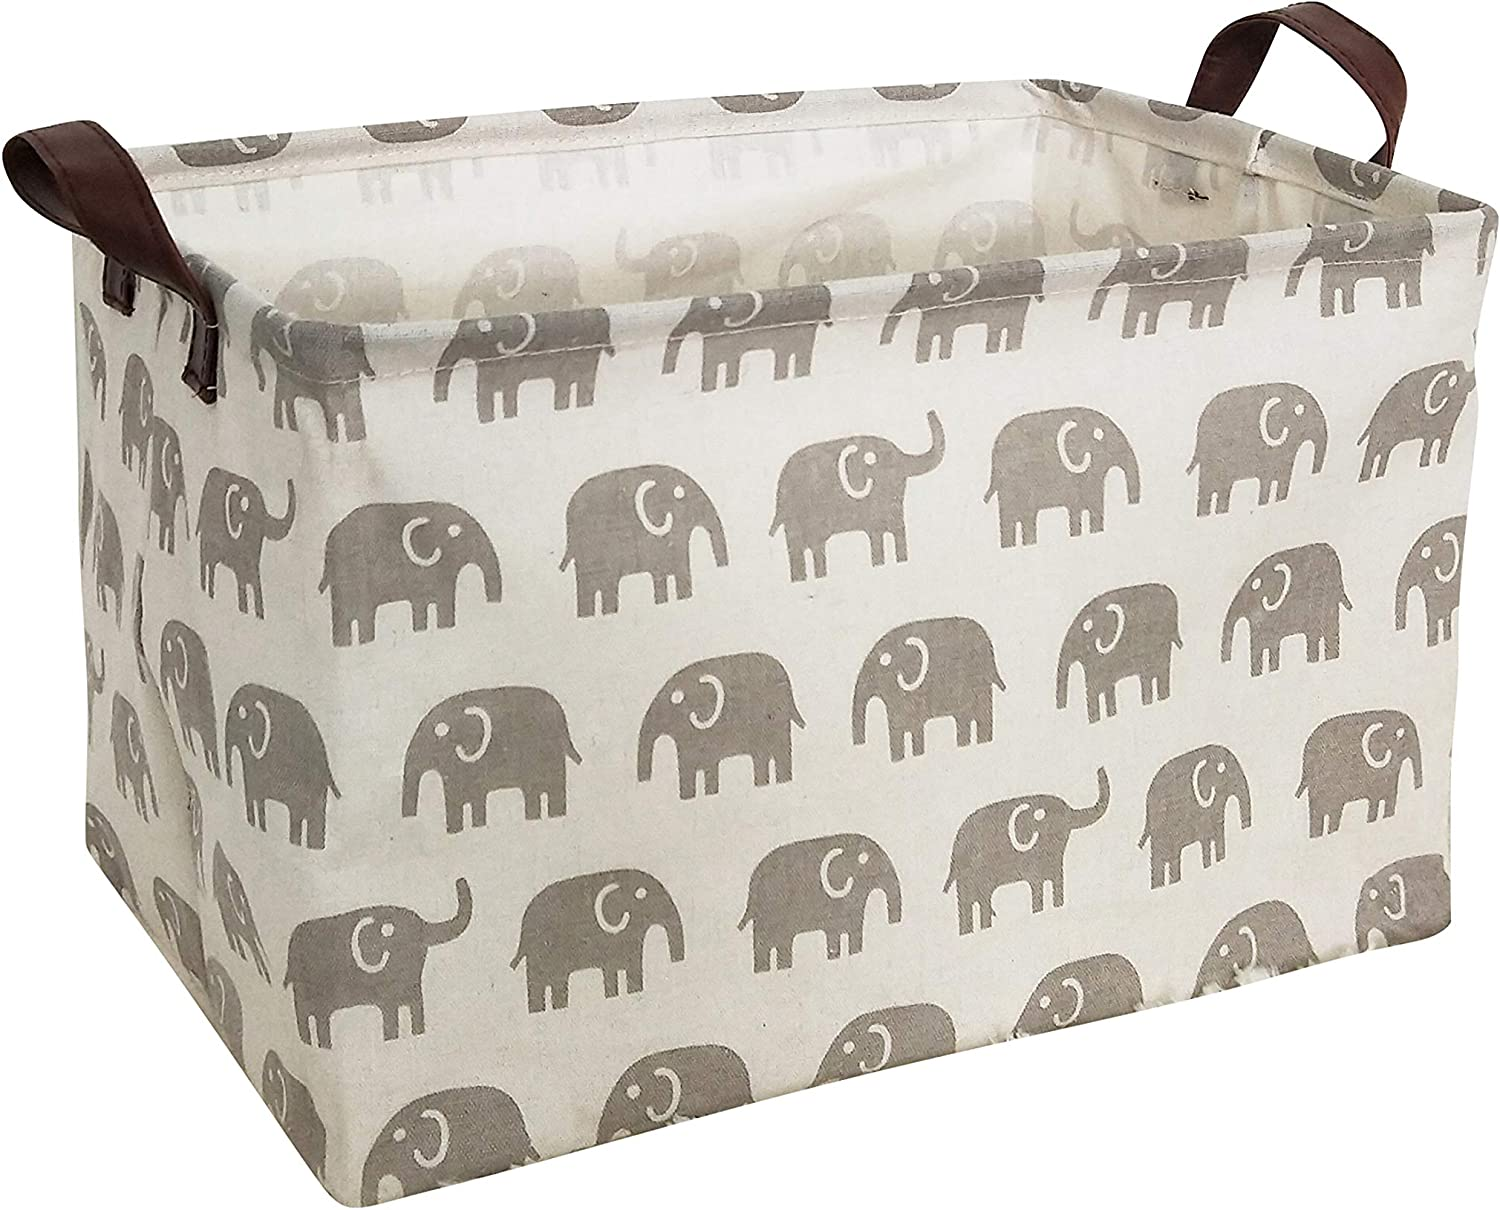 Gift Baskets Pink Elephant Fabric Collapsible Storage Bin for Organizing Toys,Nursery Basket,Clothing,Books Kids or Pets HIYAGON Rectangular Storage Box Basket for Baby